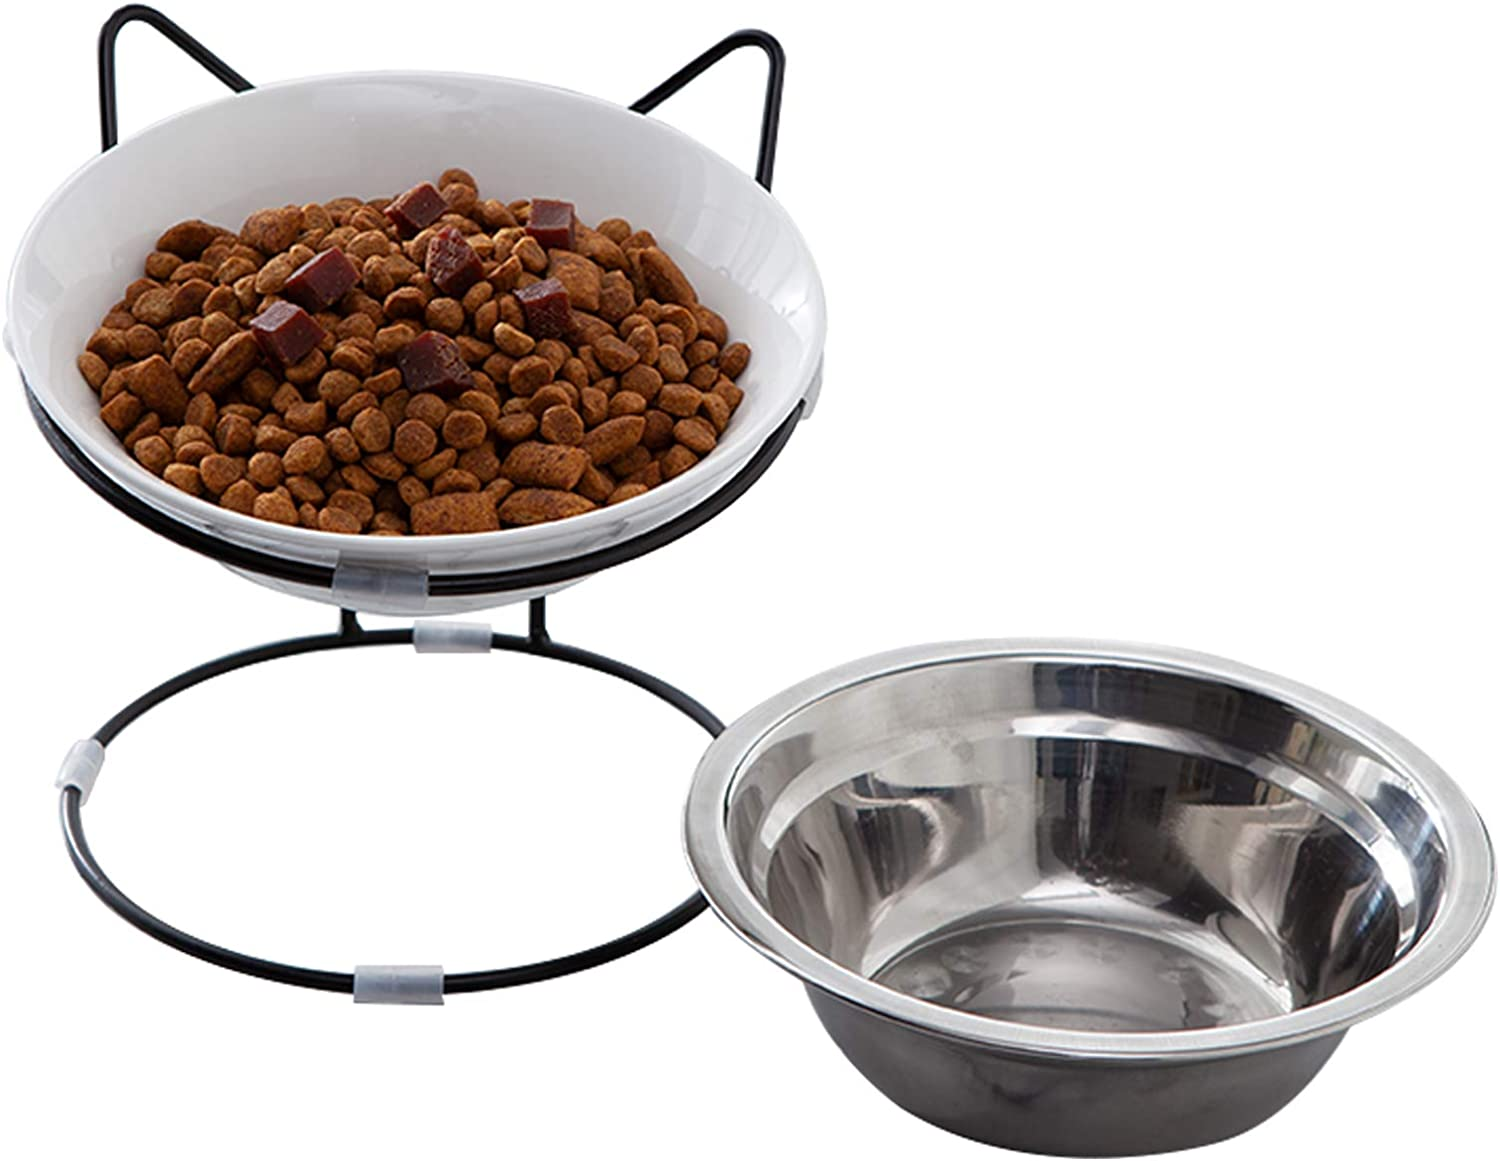 Jemirry Cat Food Bowls, Raised Cat Bowls for Food and Water, Ceramic Cat Dishes for Cat and Little Dogs, White